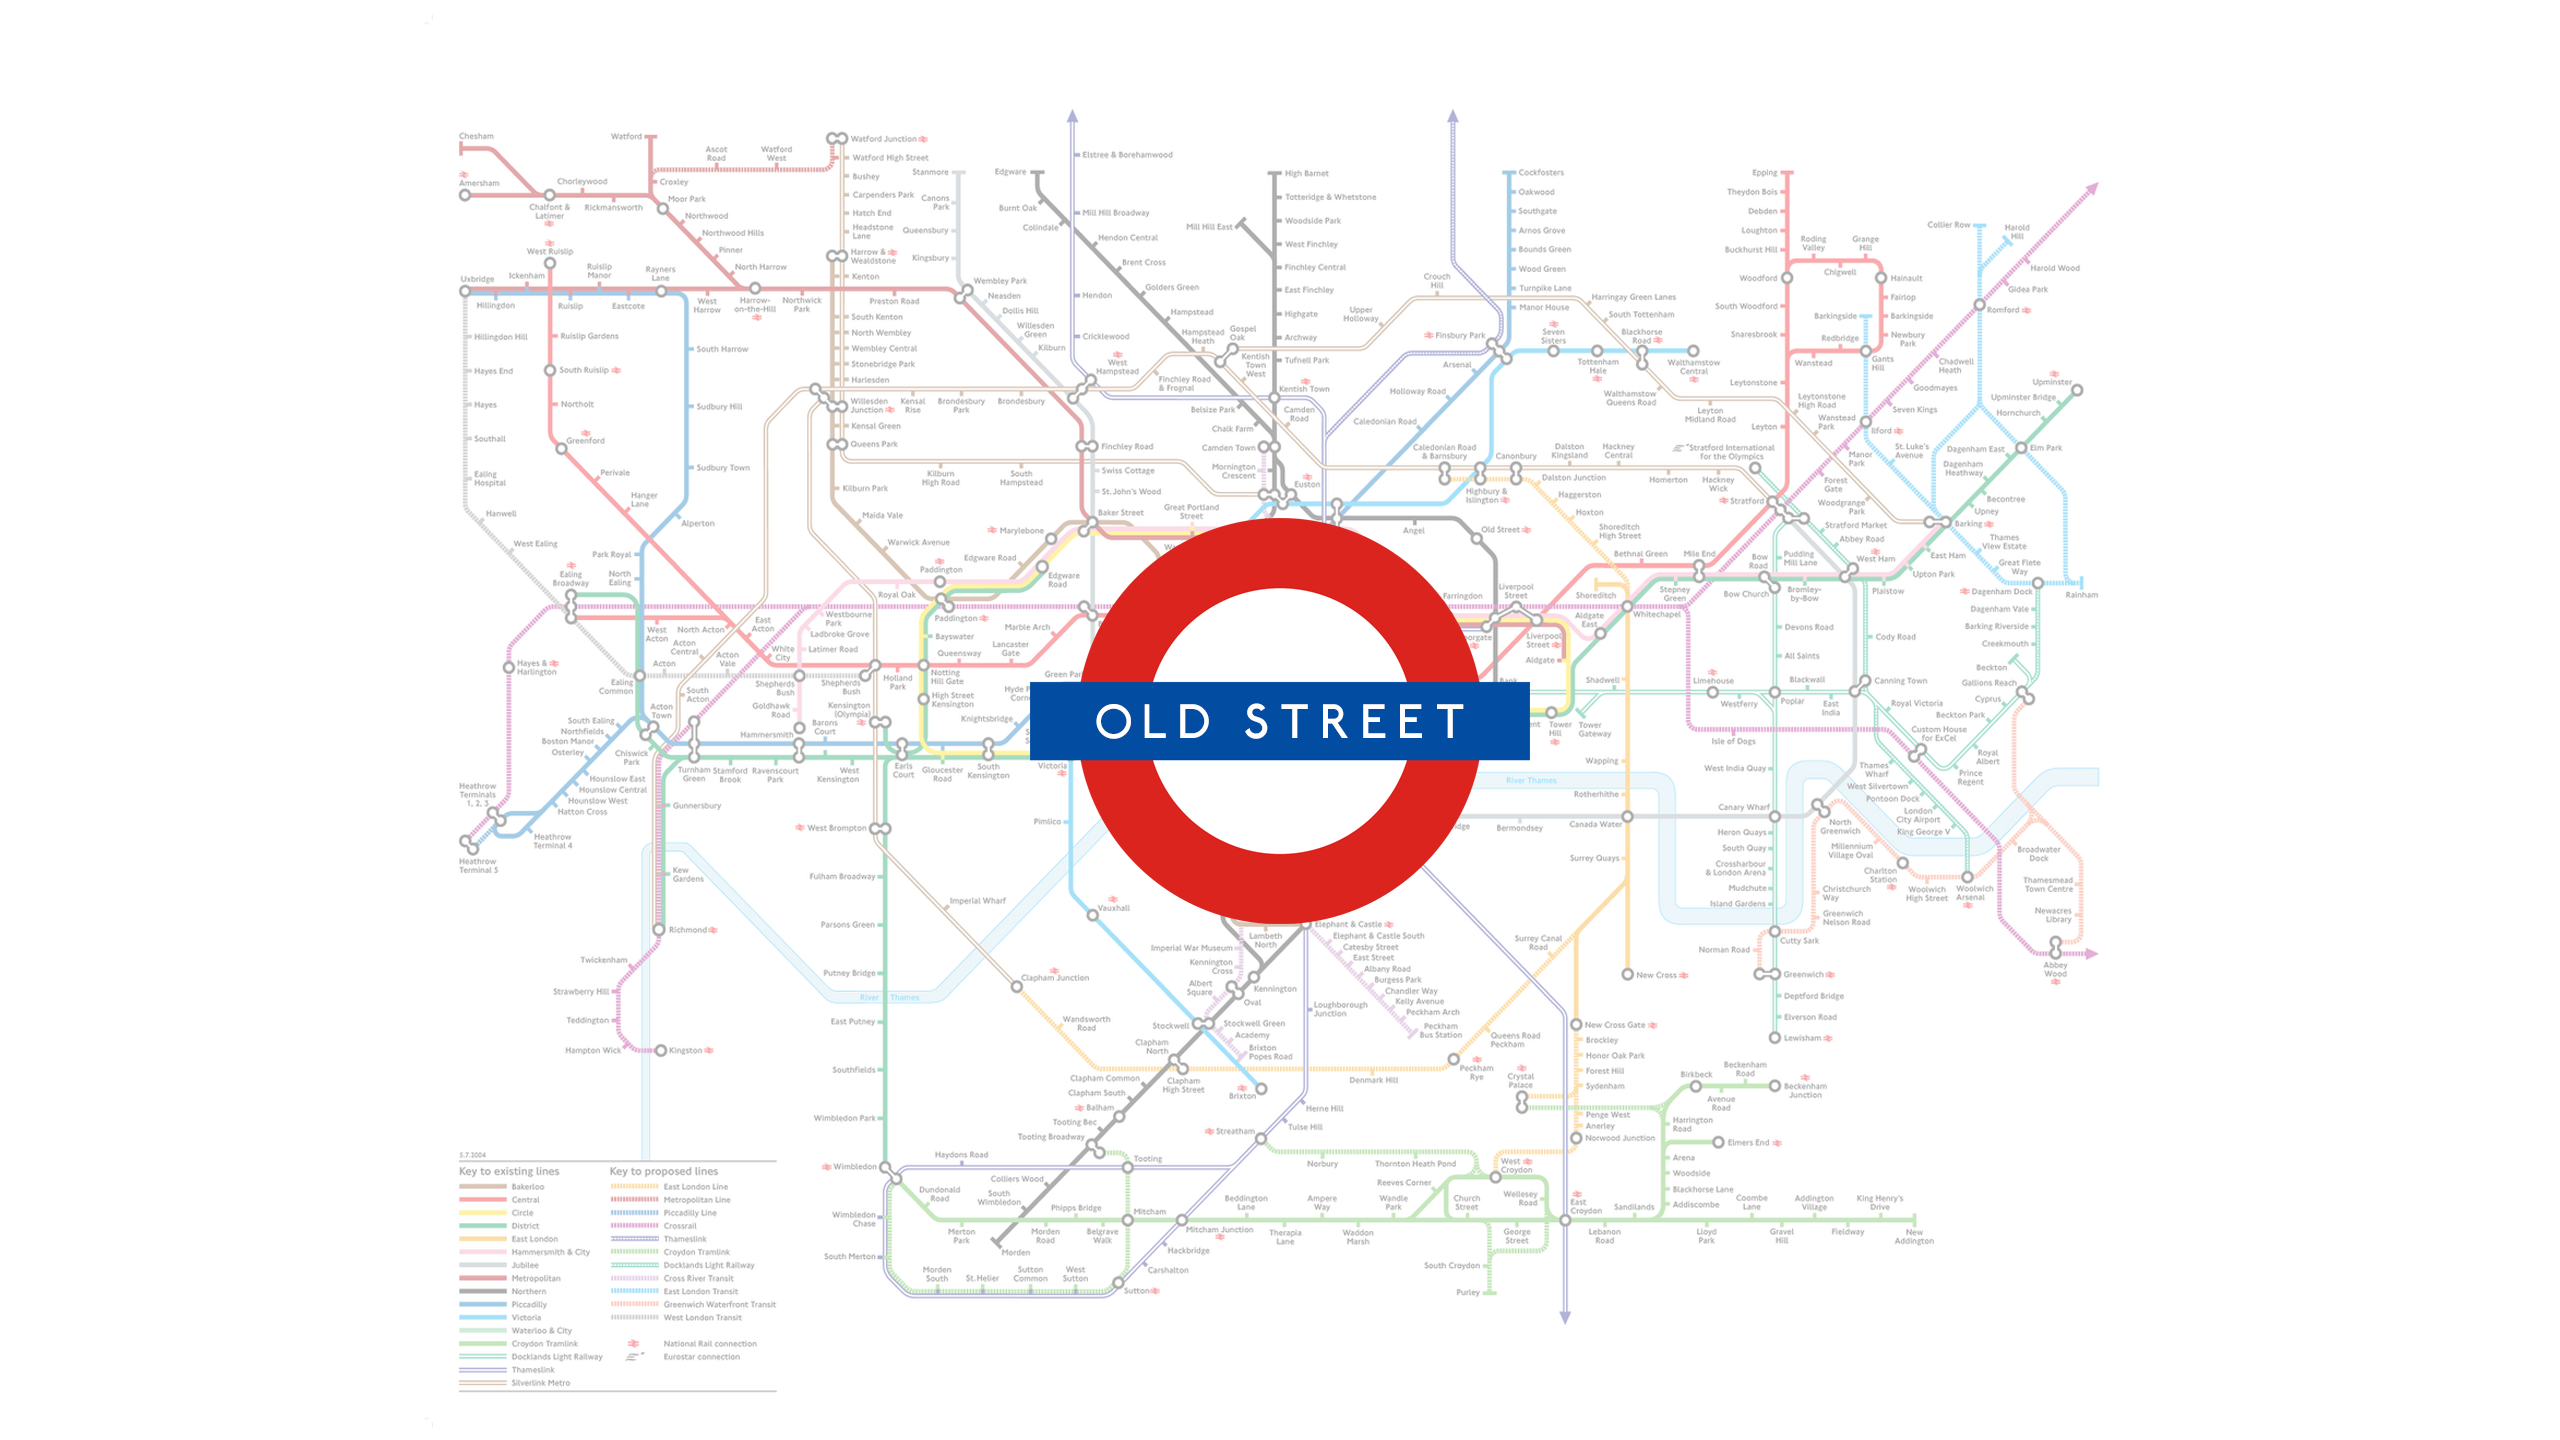 Old Street (Map)